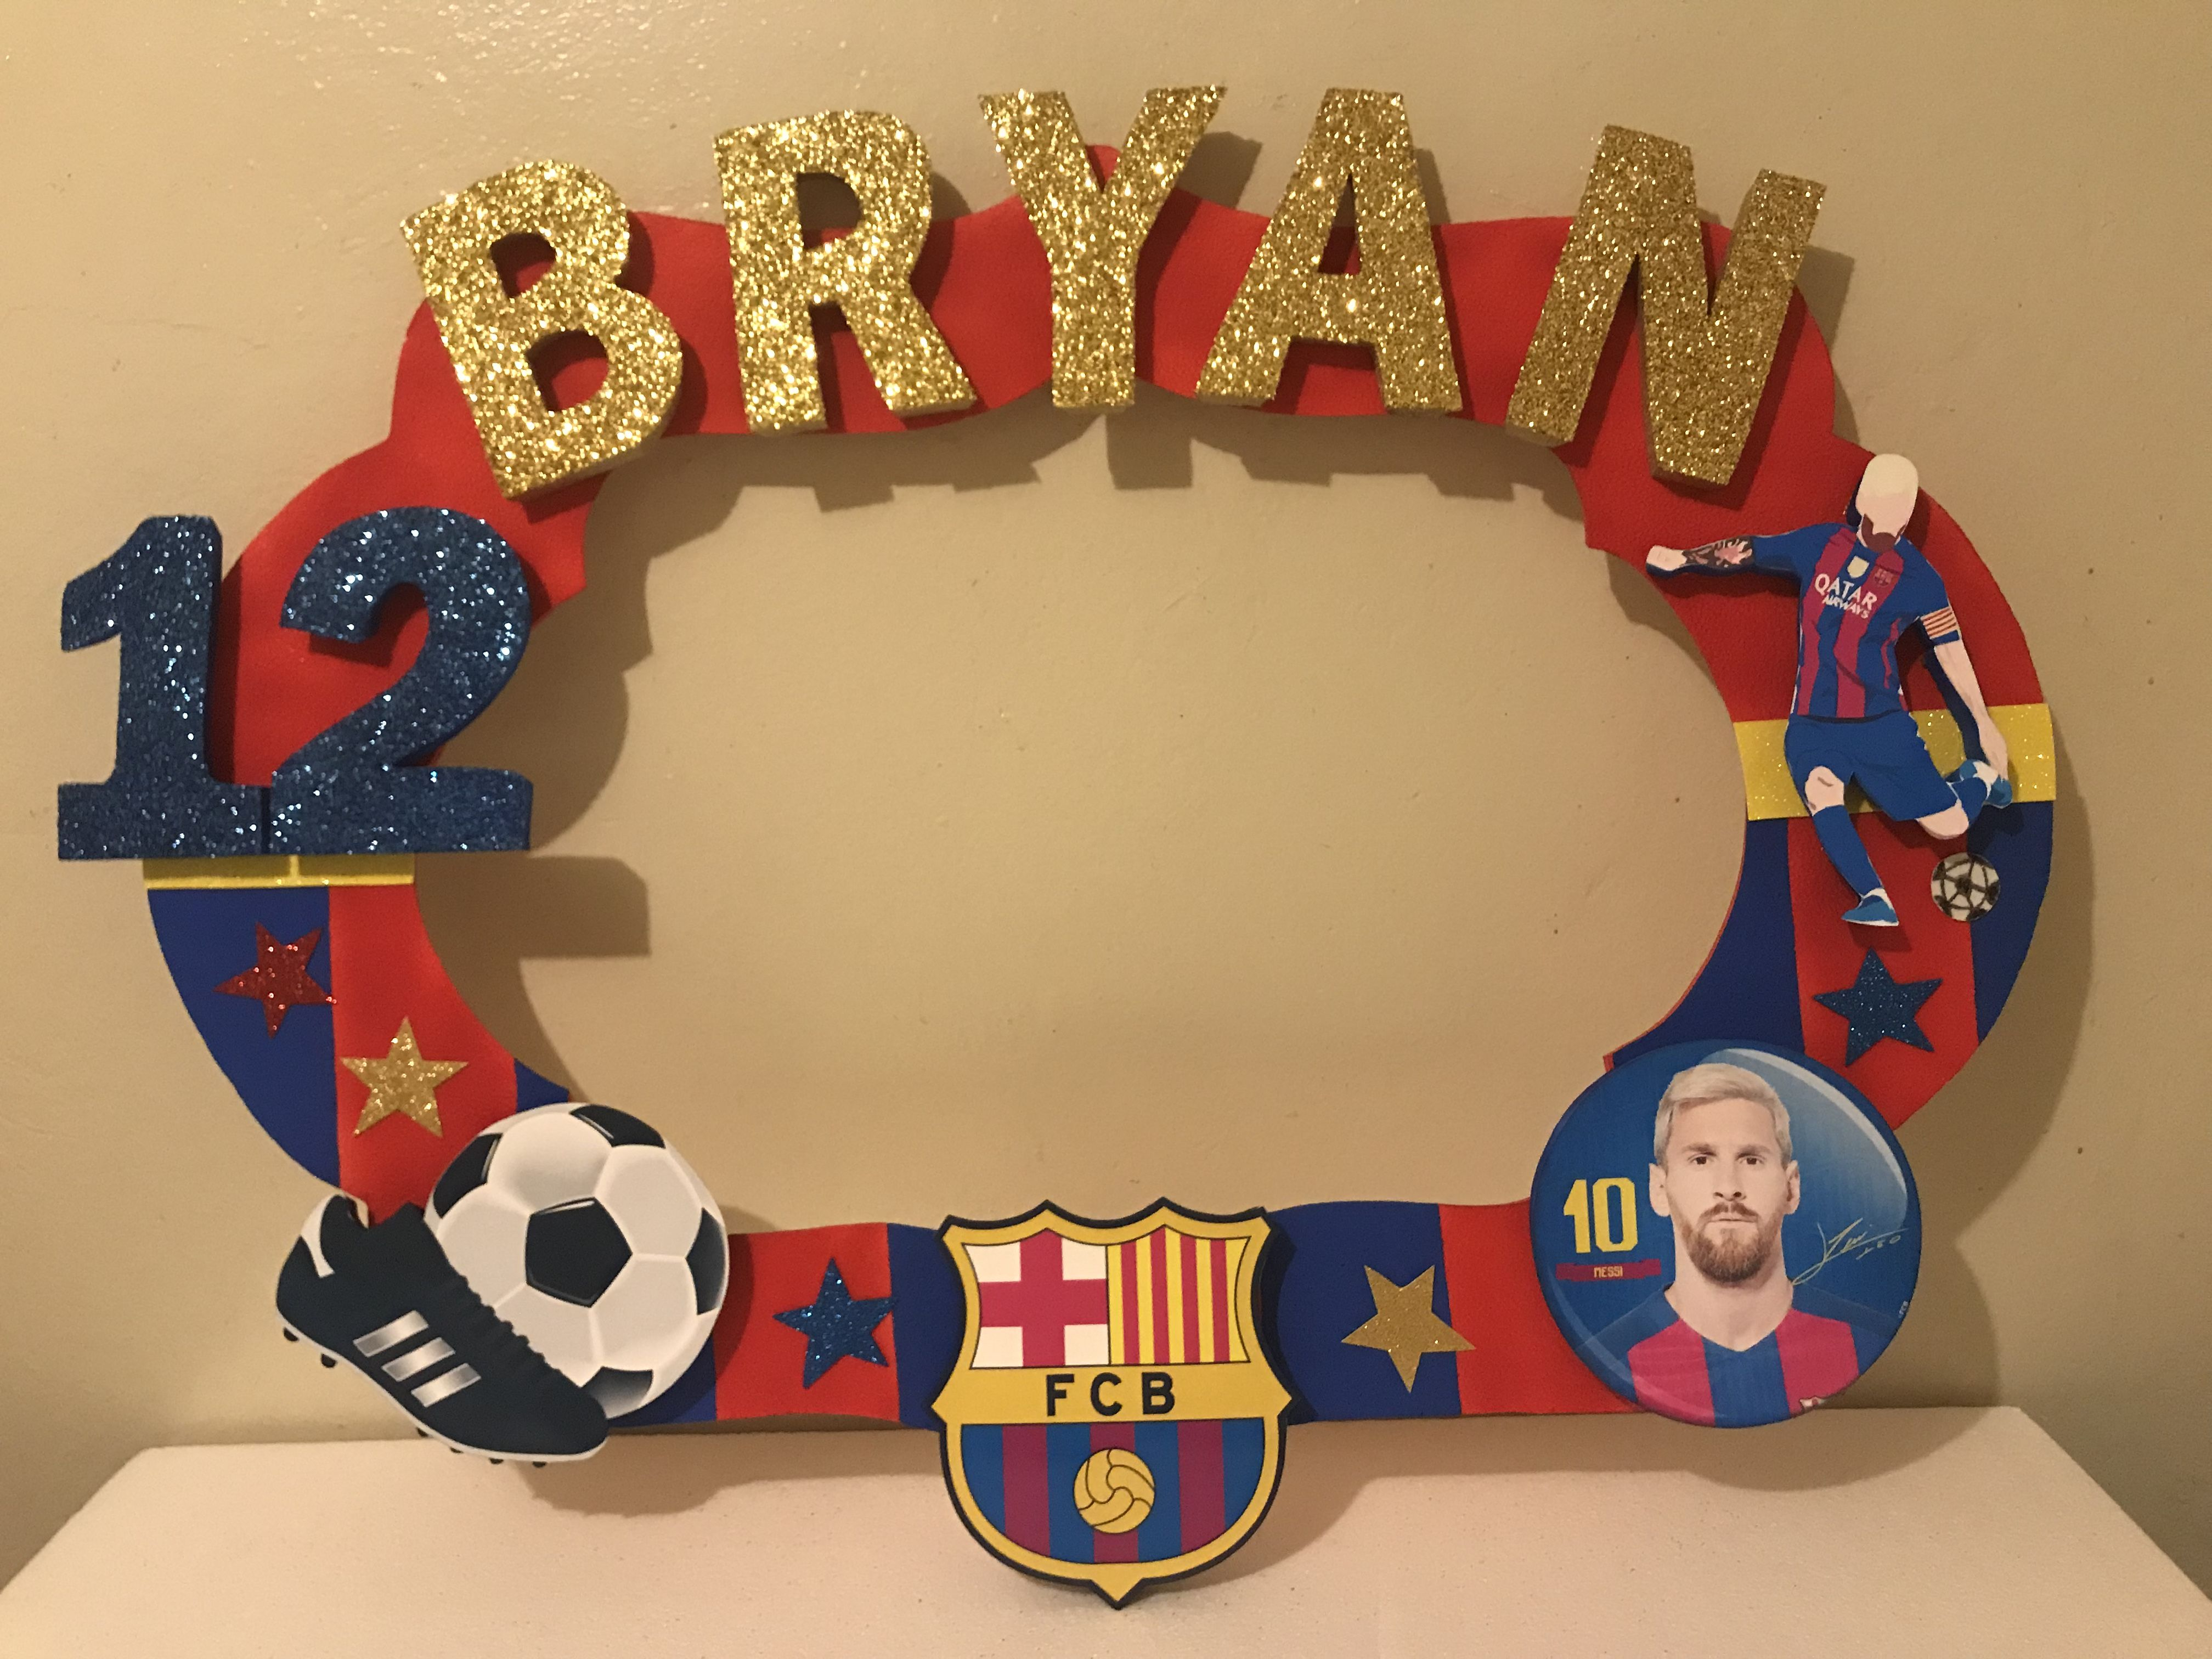 Barcelona Soccer Messi Foam Decorations Balls Photobooth Frame Characters Name Gool Ice Coolers Centerpieces Trophys Home Decor Decor Frame